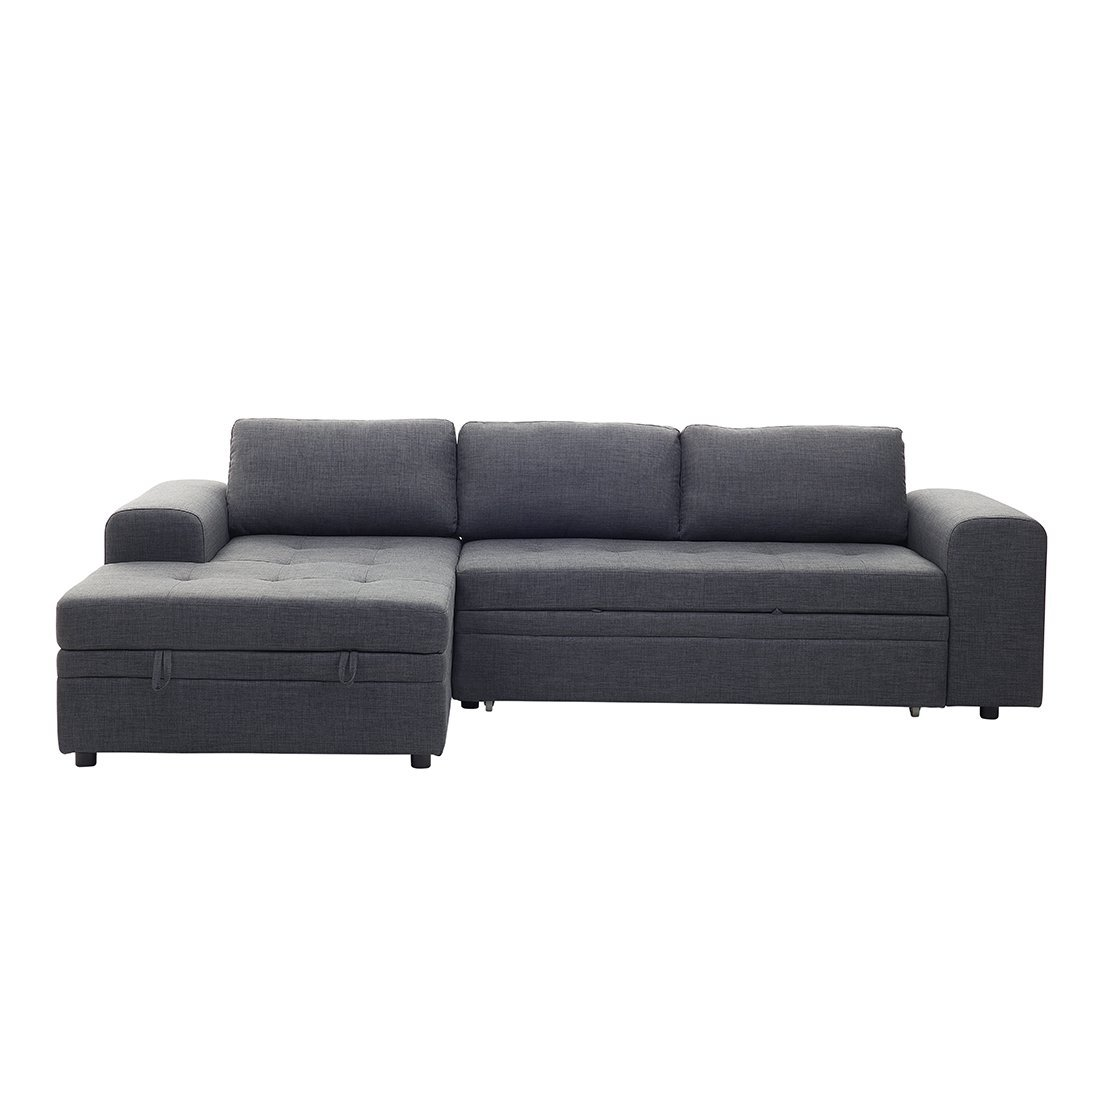 Amazoncom Beliani Modern Corner Sectional Sofa With Pull Out